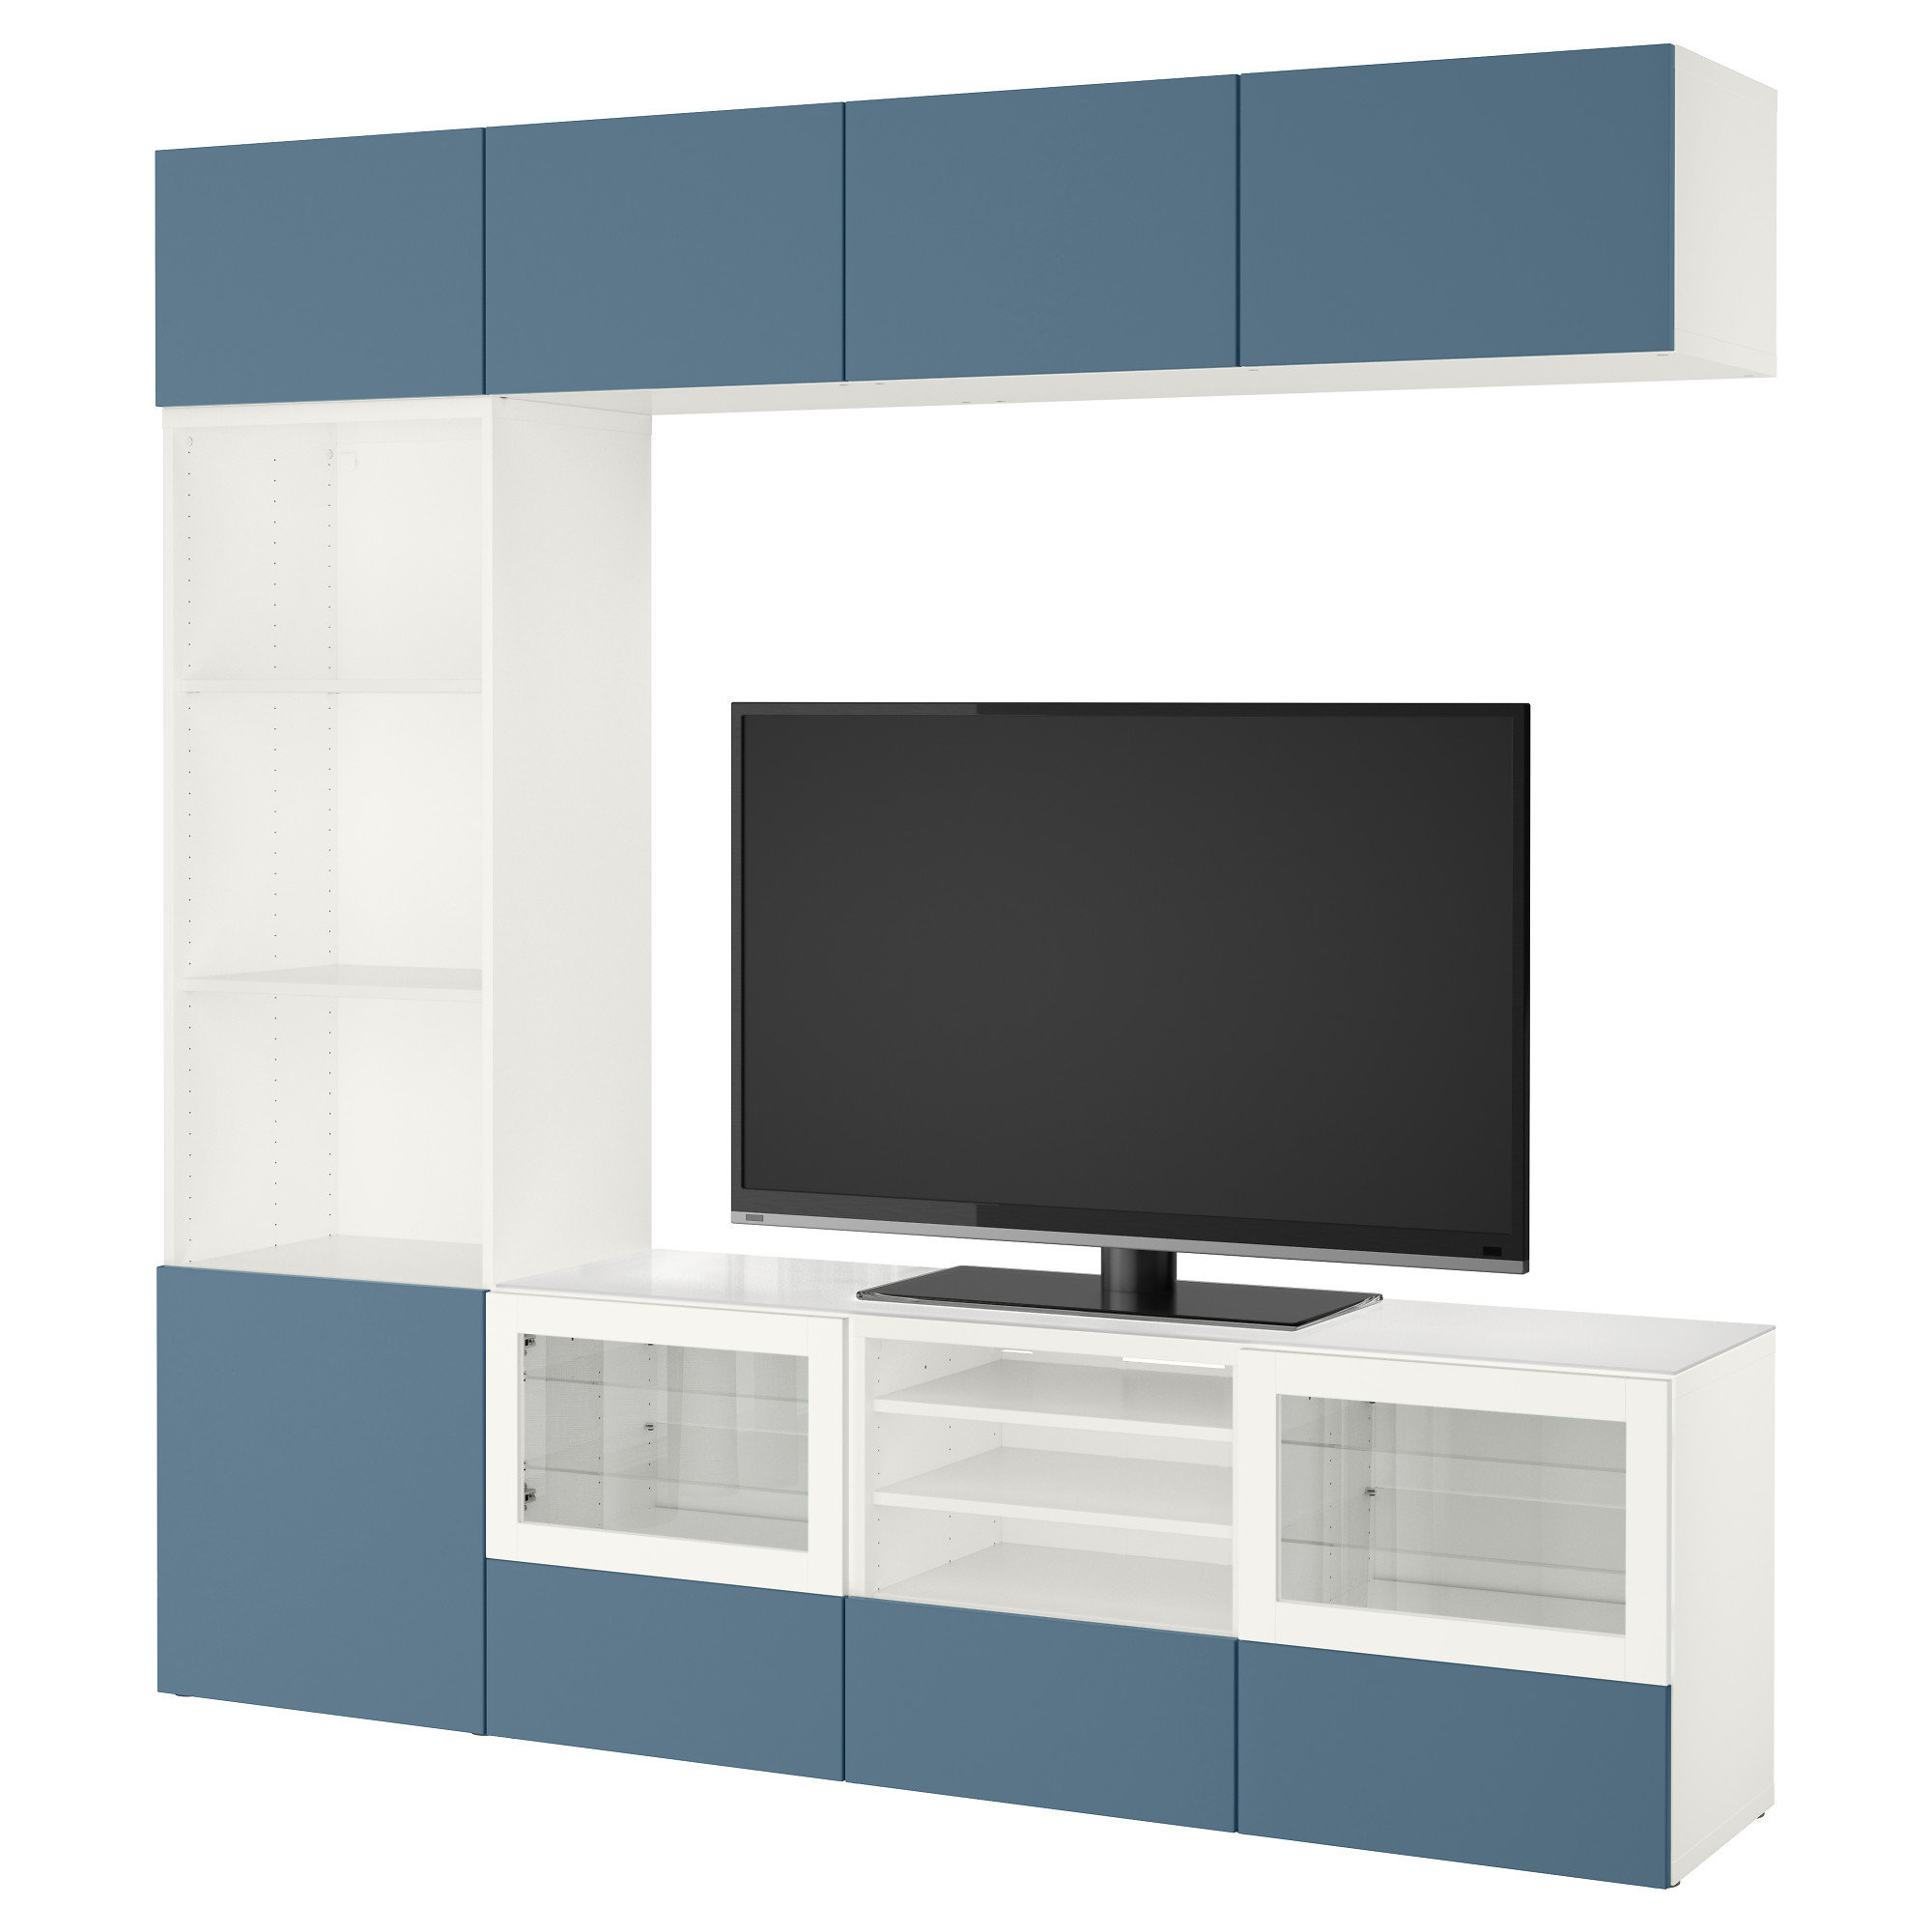 BESTÅ system - Combinations & TV benches - IKEA